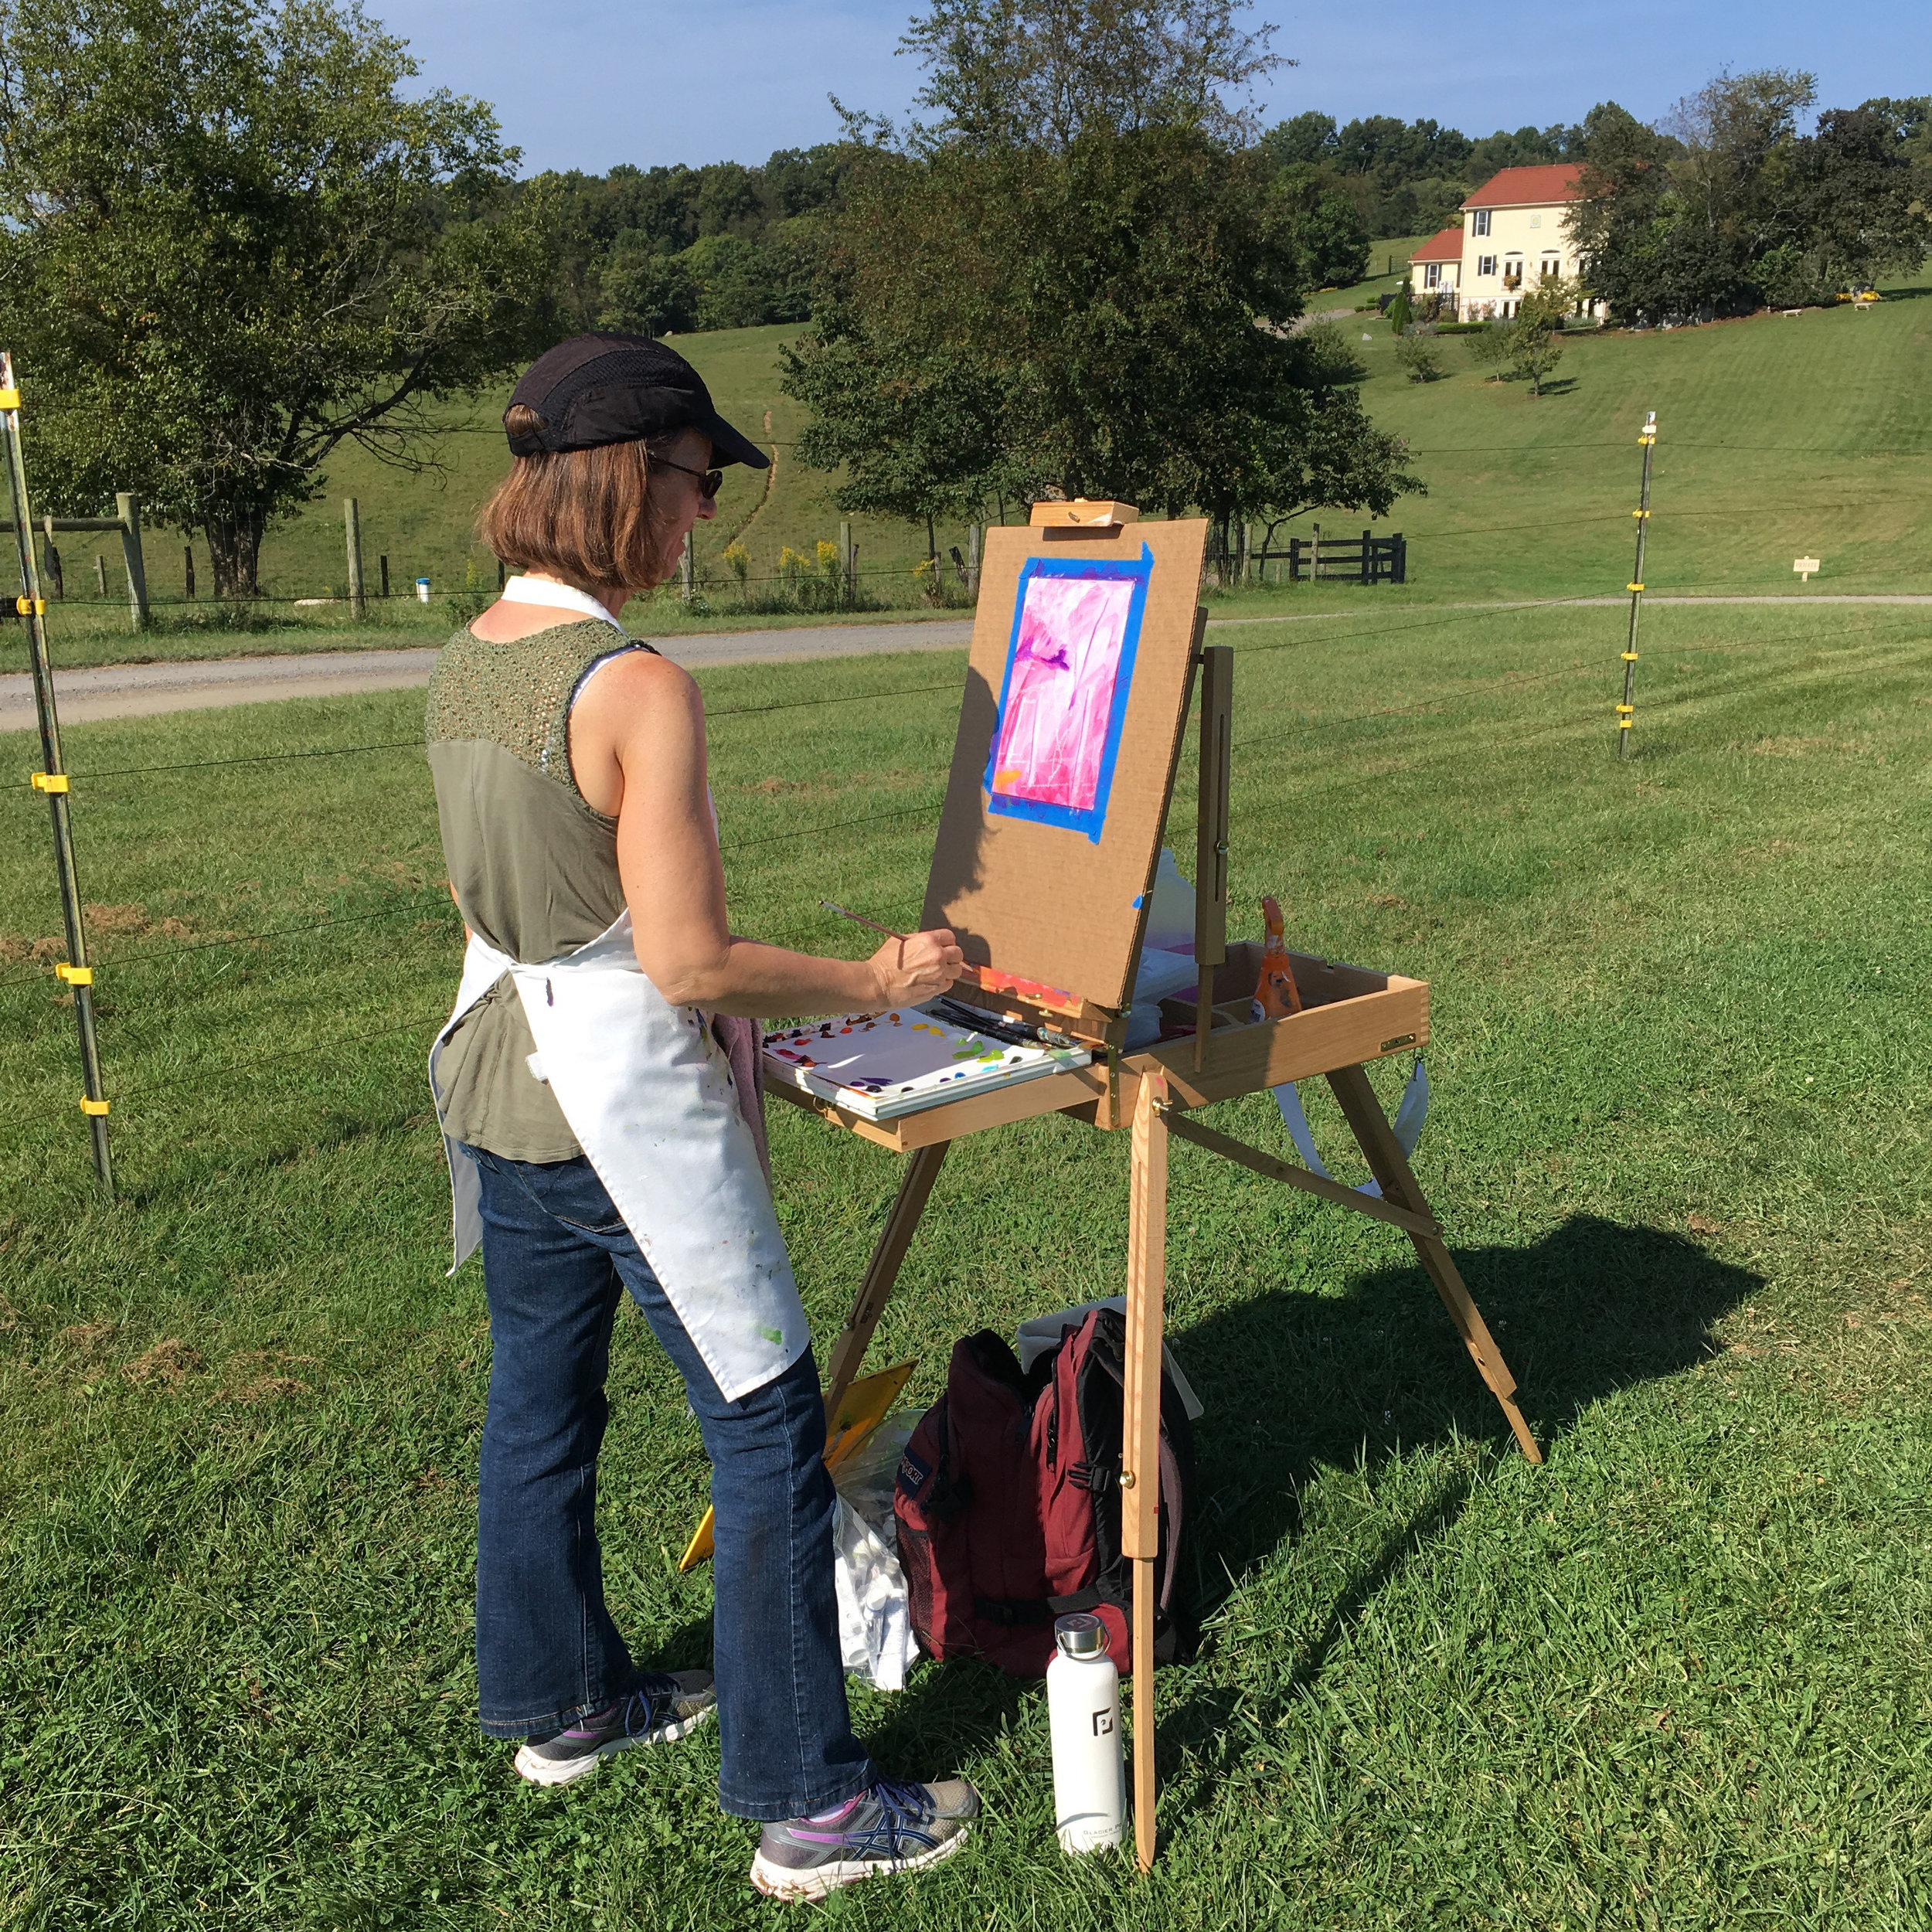 Painting outdoors at Three Fox Vineyard in Deplane, VA